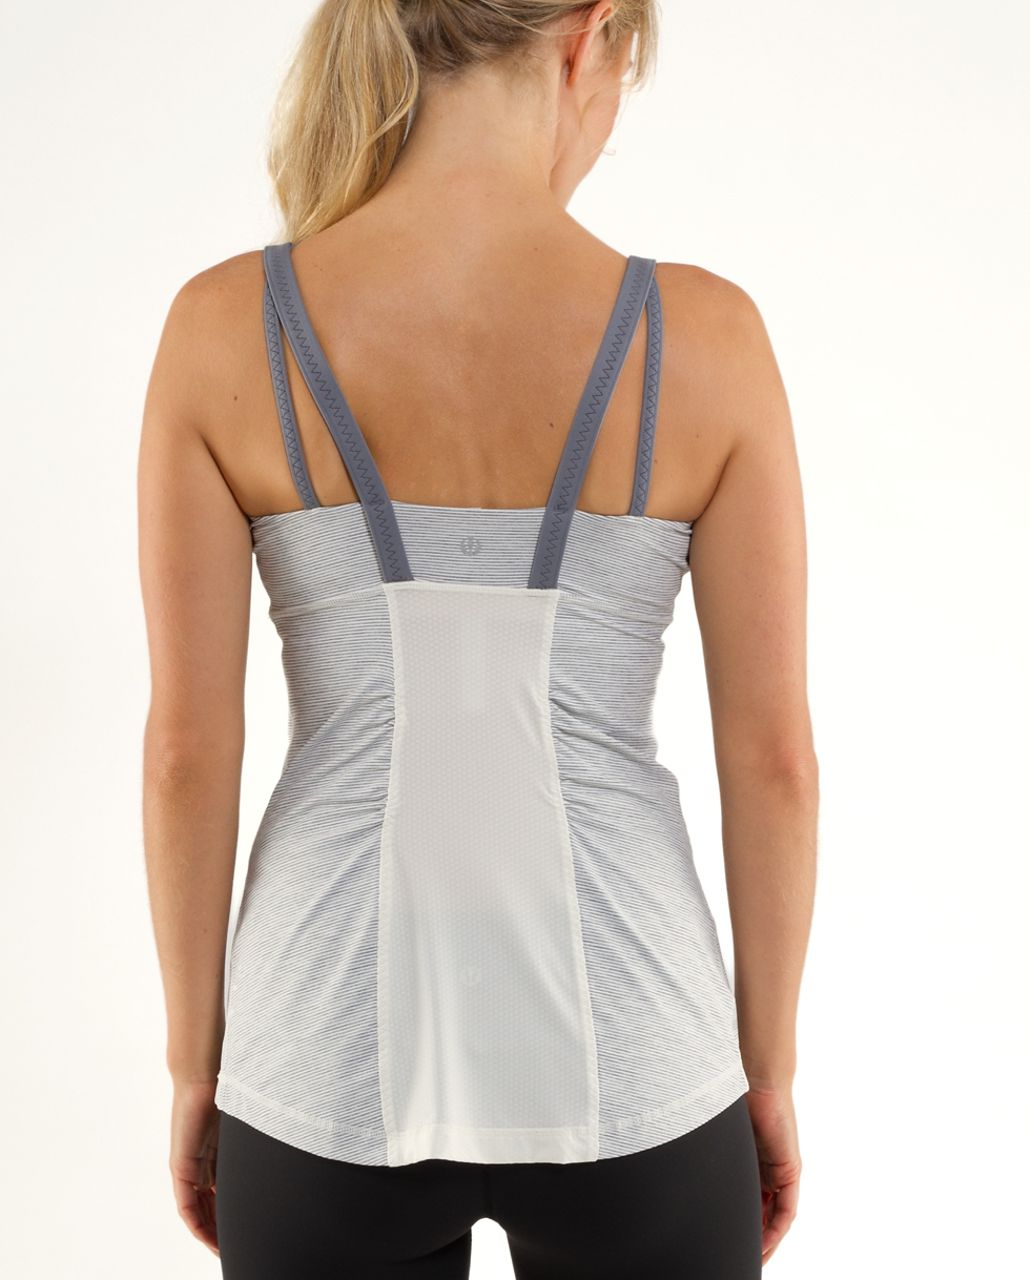 Lululemon Active Strength Tank - Ghost Blurred Grey Mini Stripe /  Coal